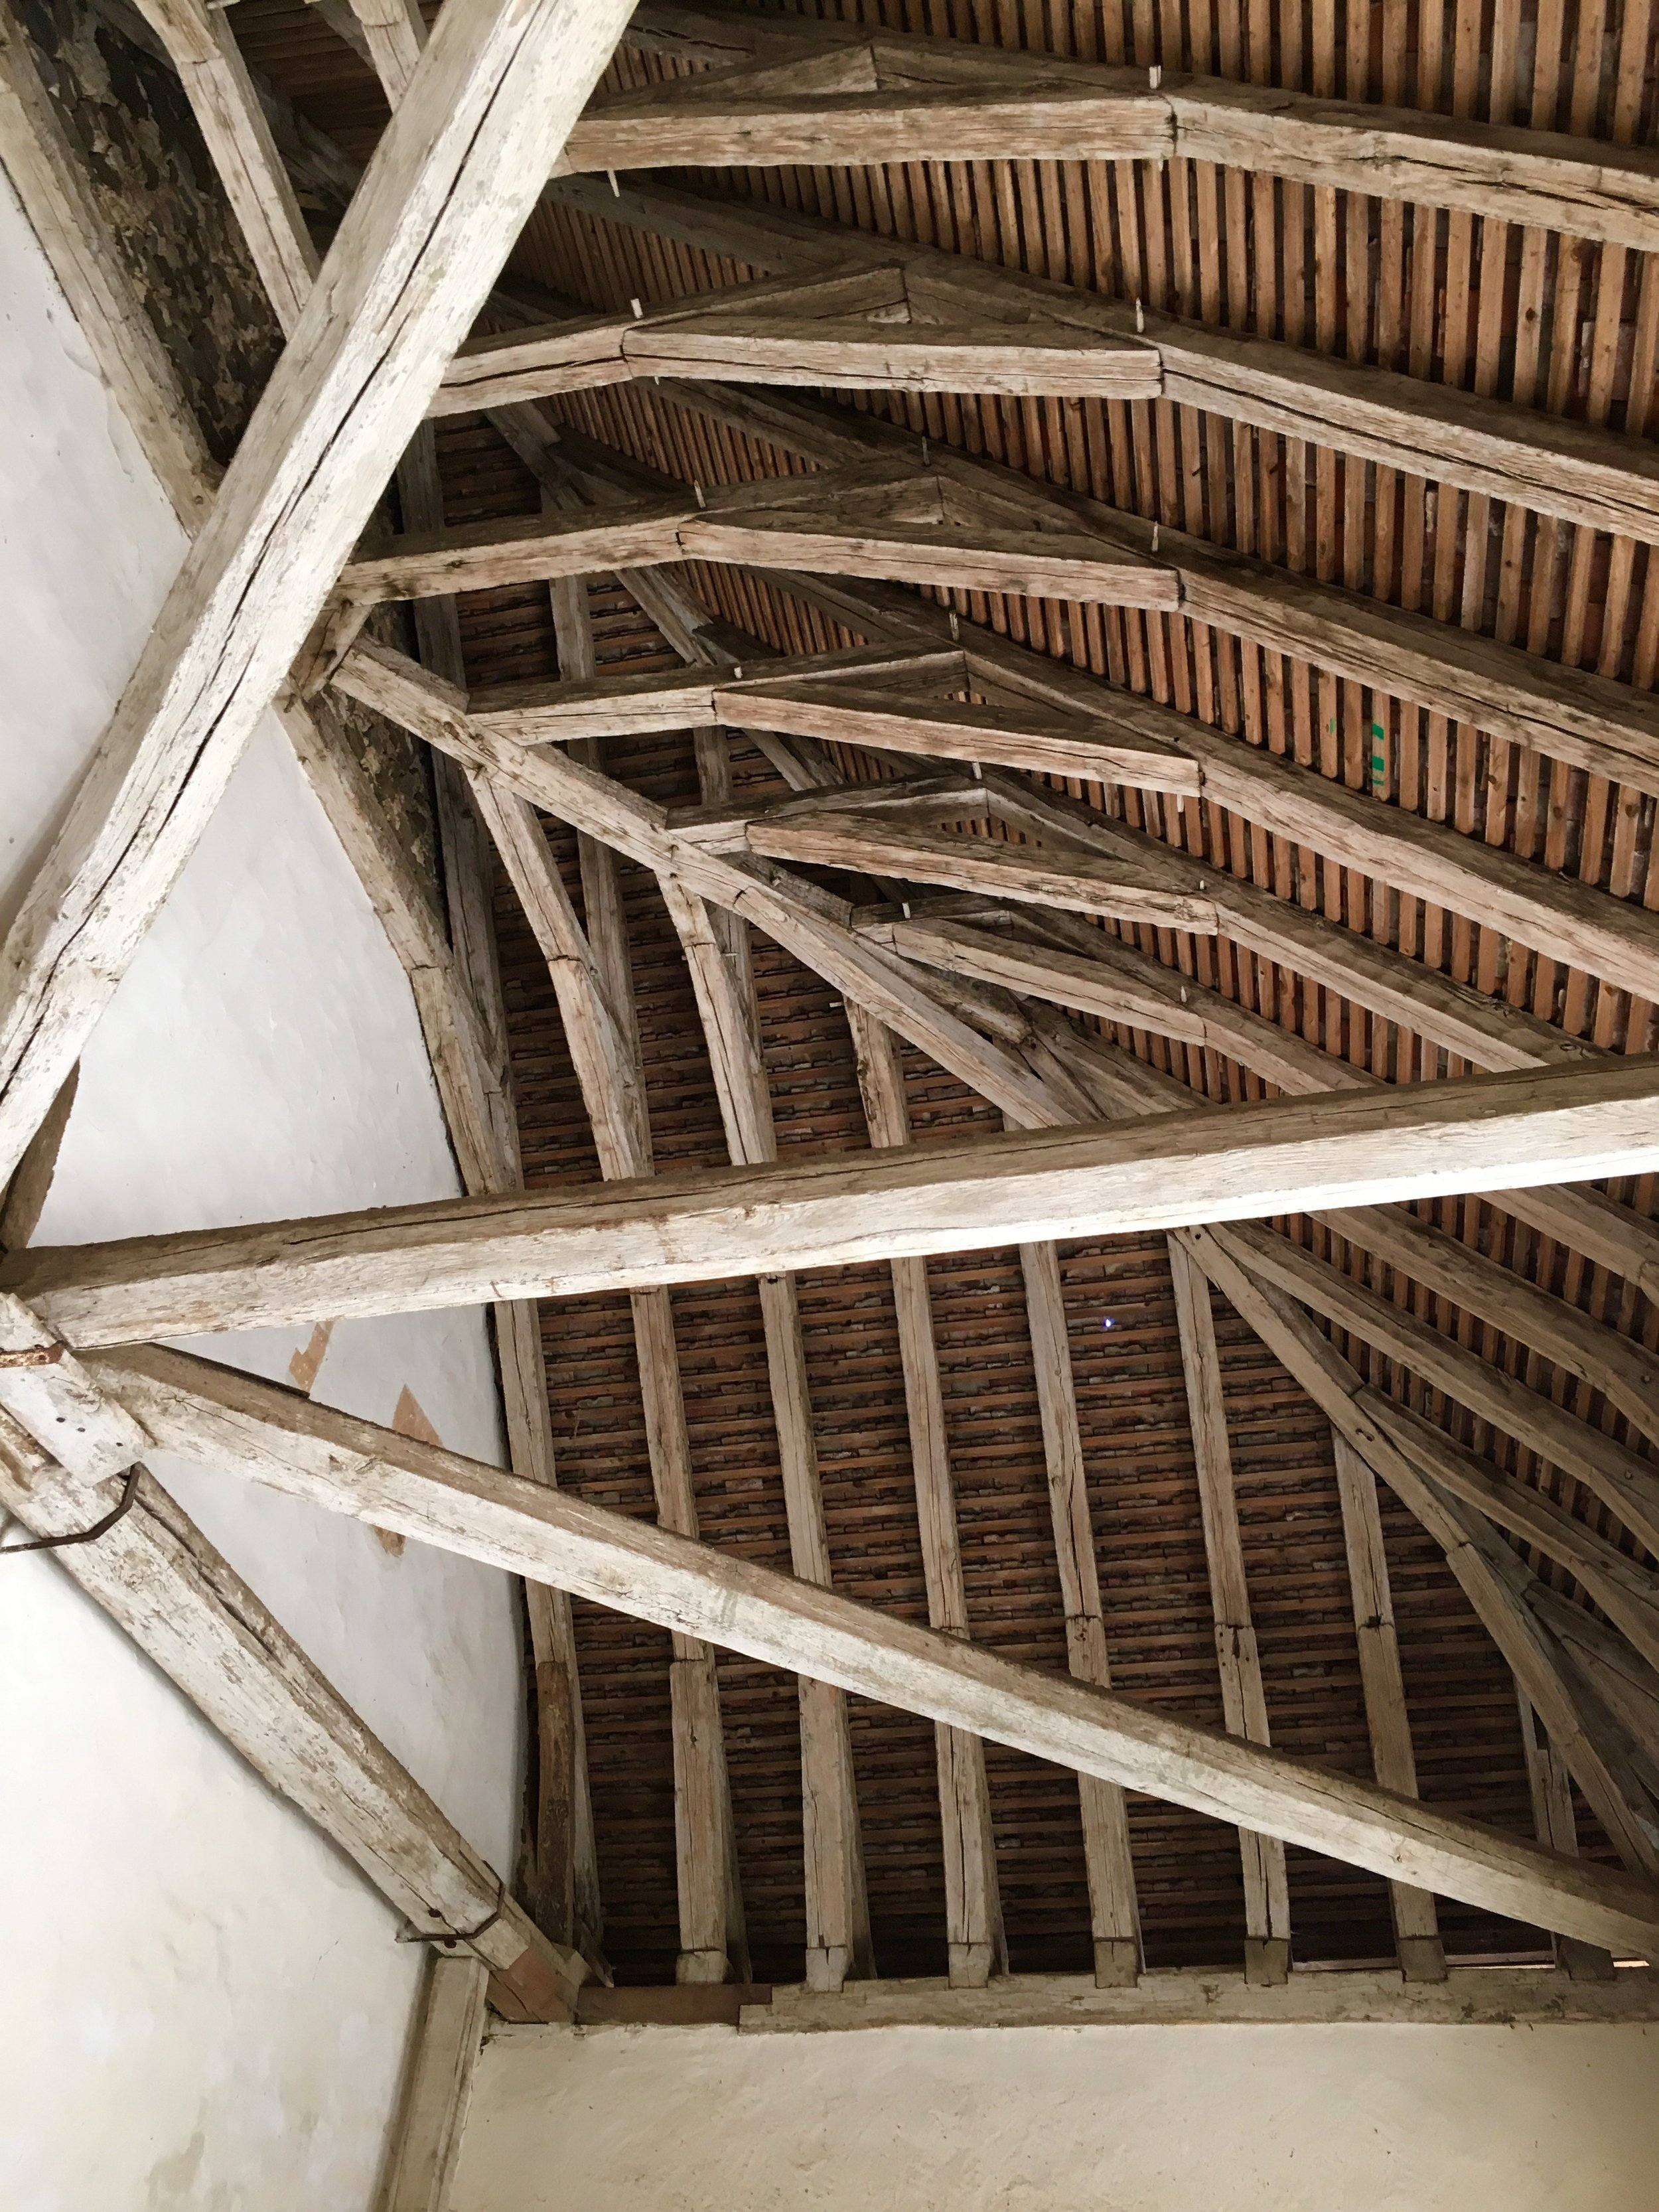 The beautiful beamed roof of the entrance portico, prelude to entering Eglise St. Pierre (photograph J Cook)